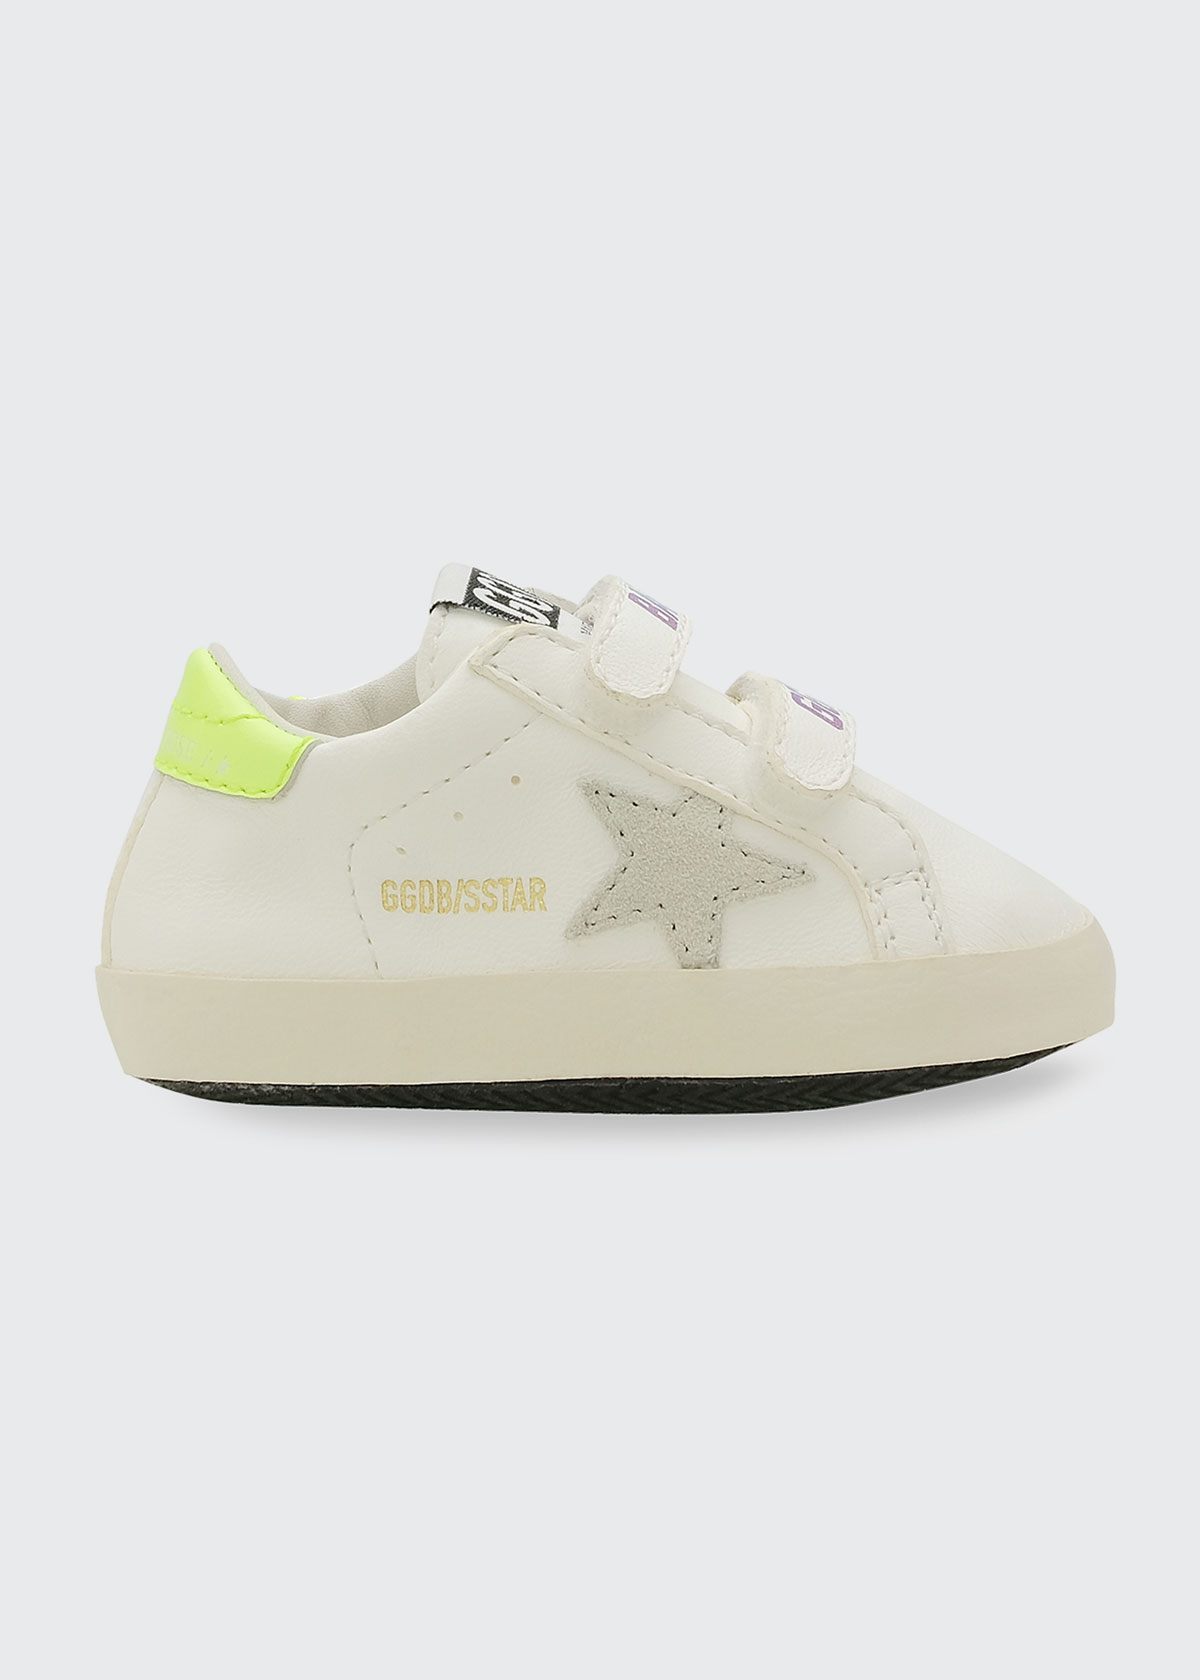 Golden Goose GIRL'S OLD SCHOOL GRIP-STRAP SNEAKERS, BABY SIZES 0-9 MONTHS